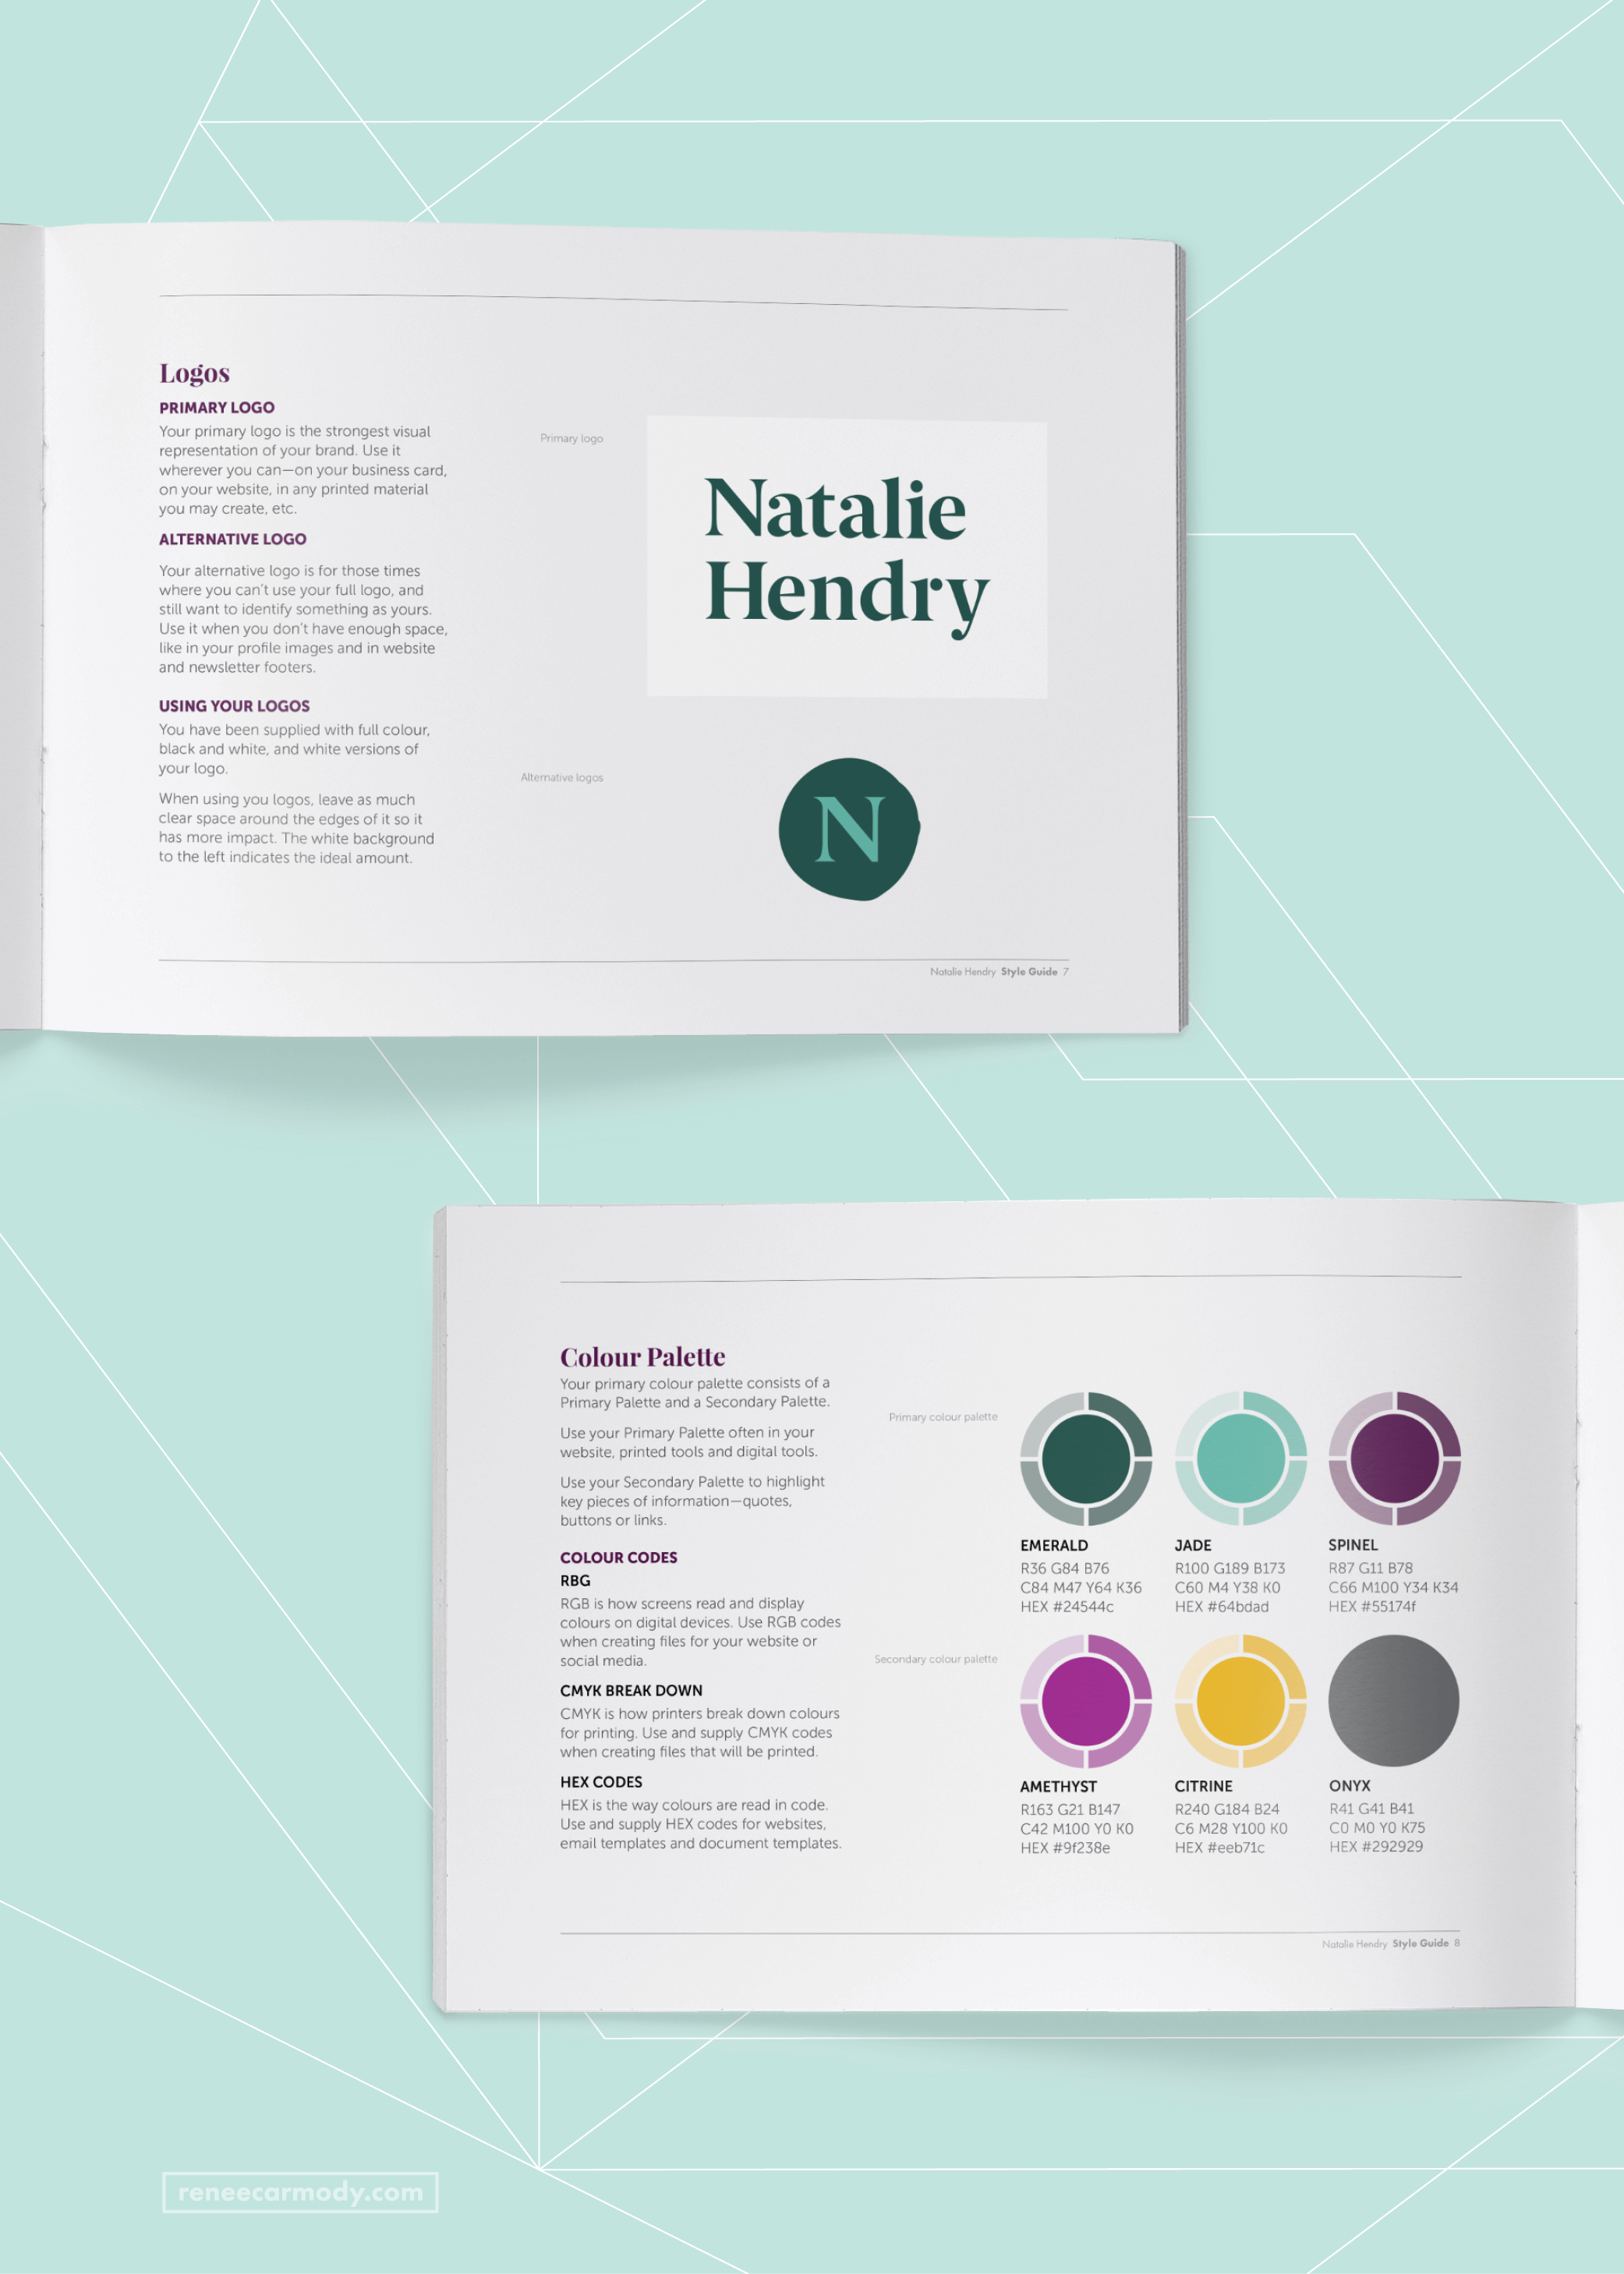 Brand Style Guide designed for Natalie Hendry by Renée Carmody Design.